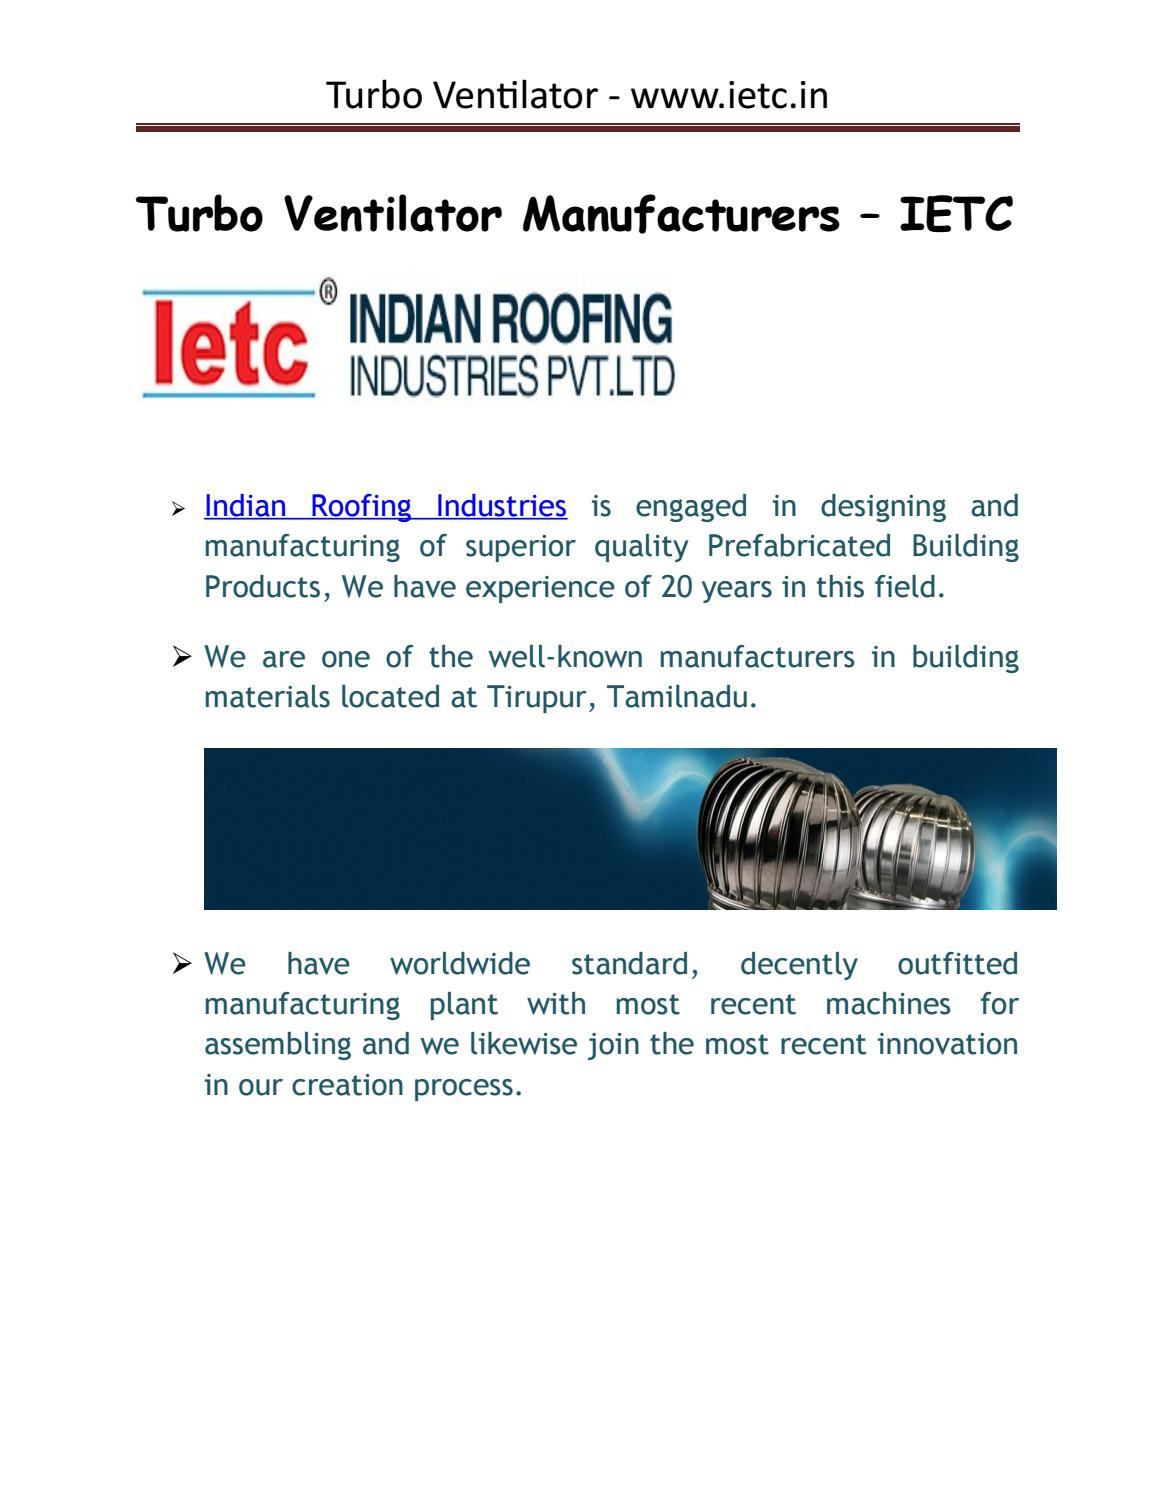 Turbo ventilator by Ietc Roofing - issuu